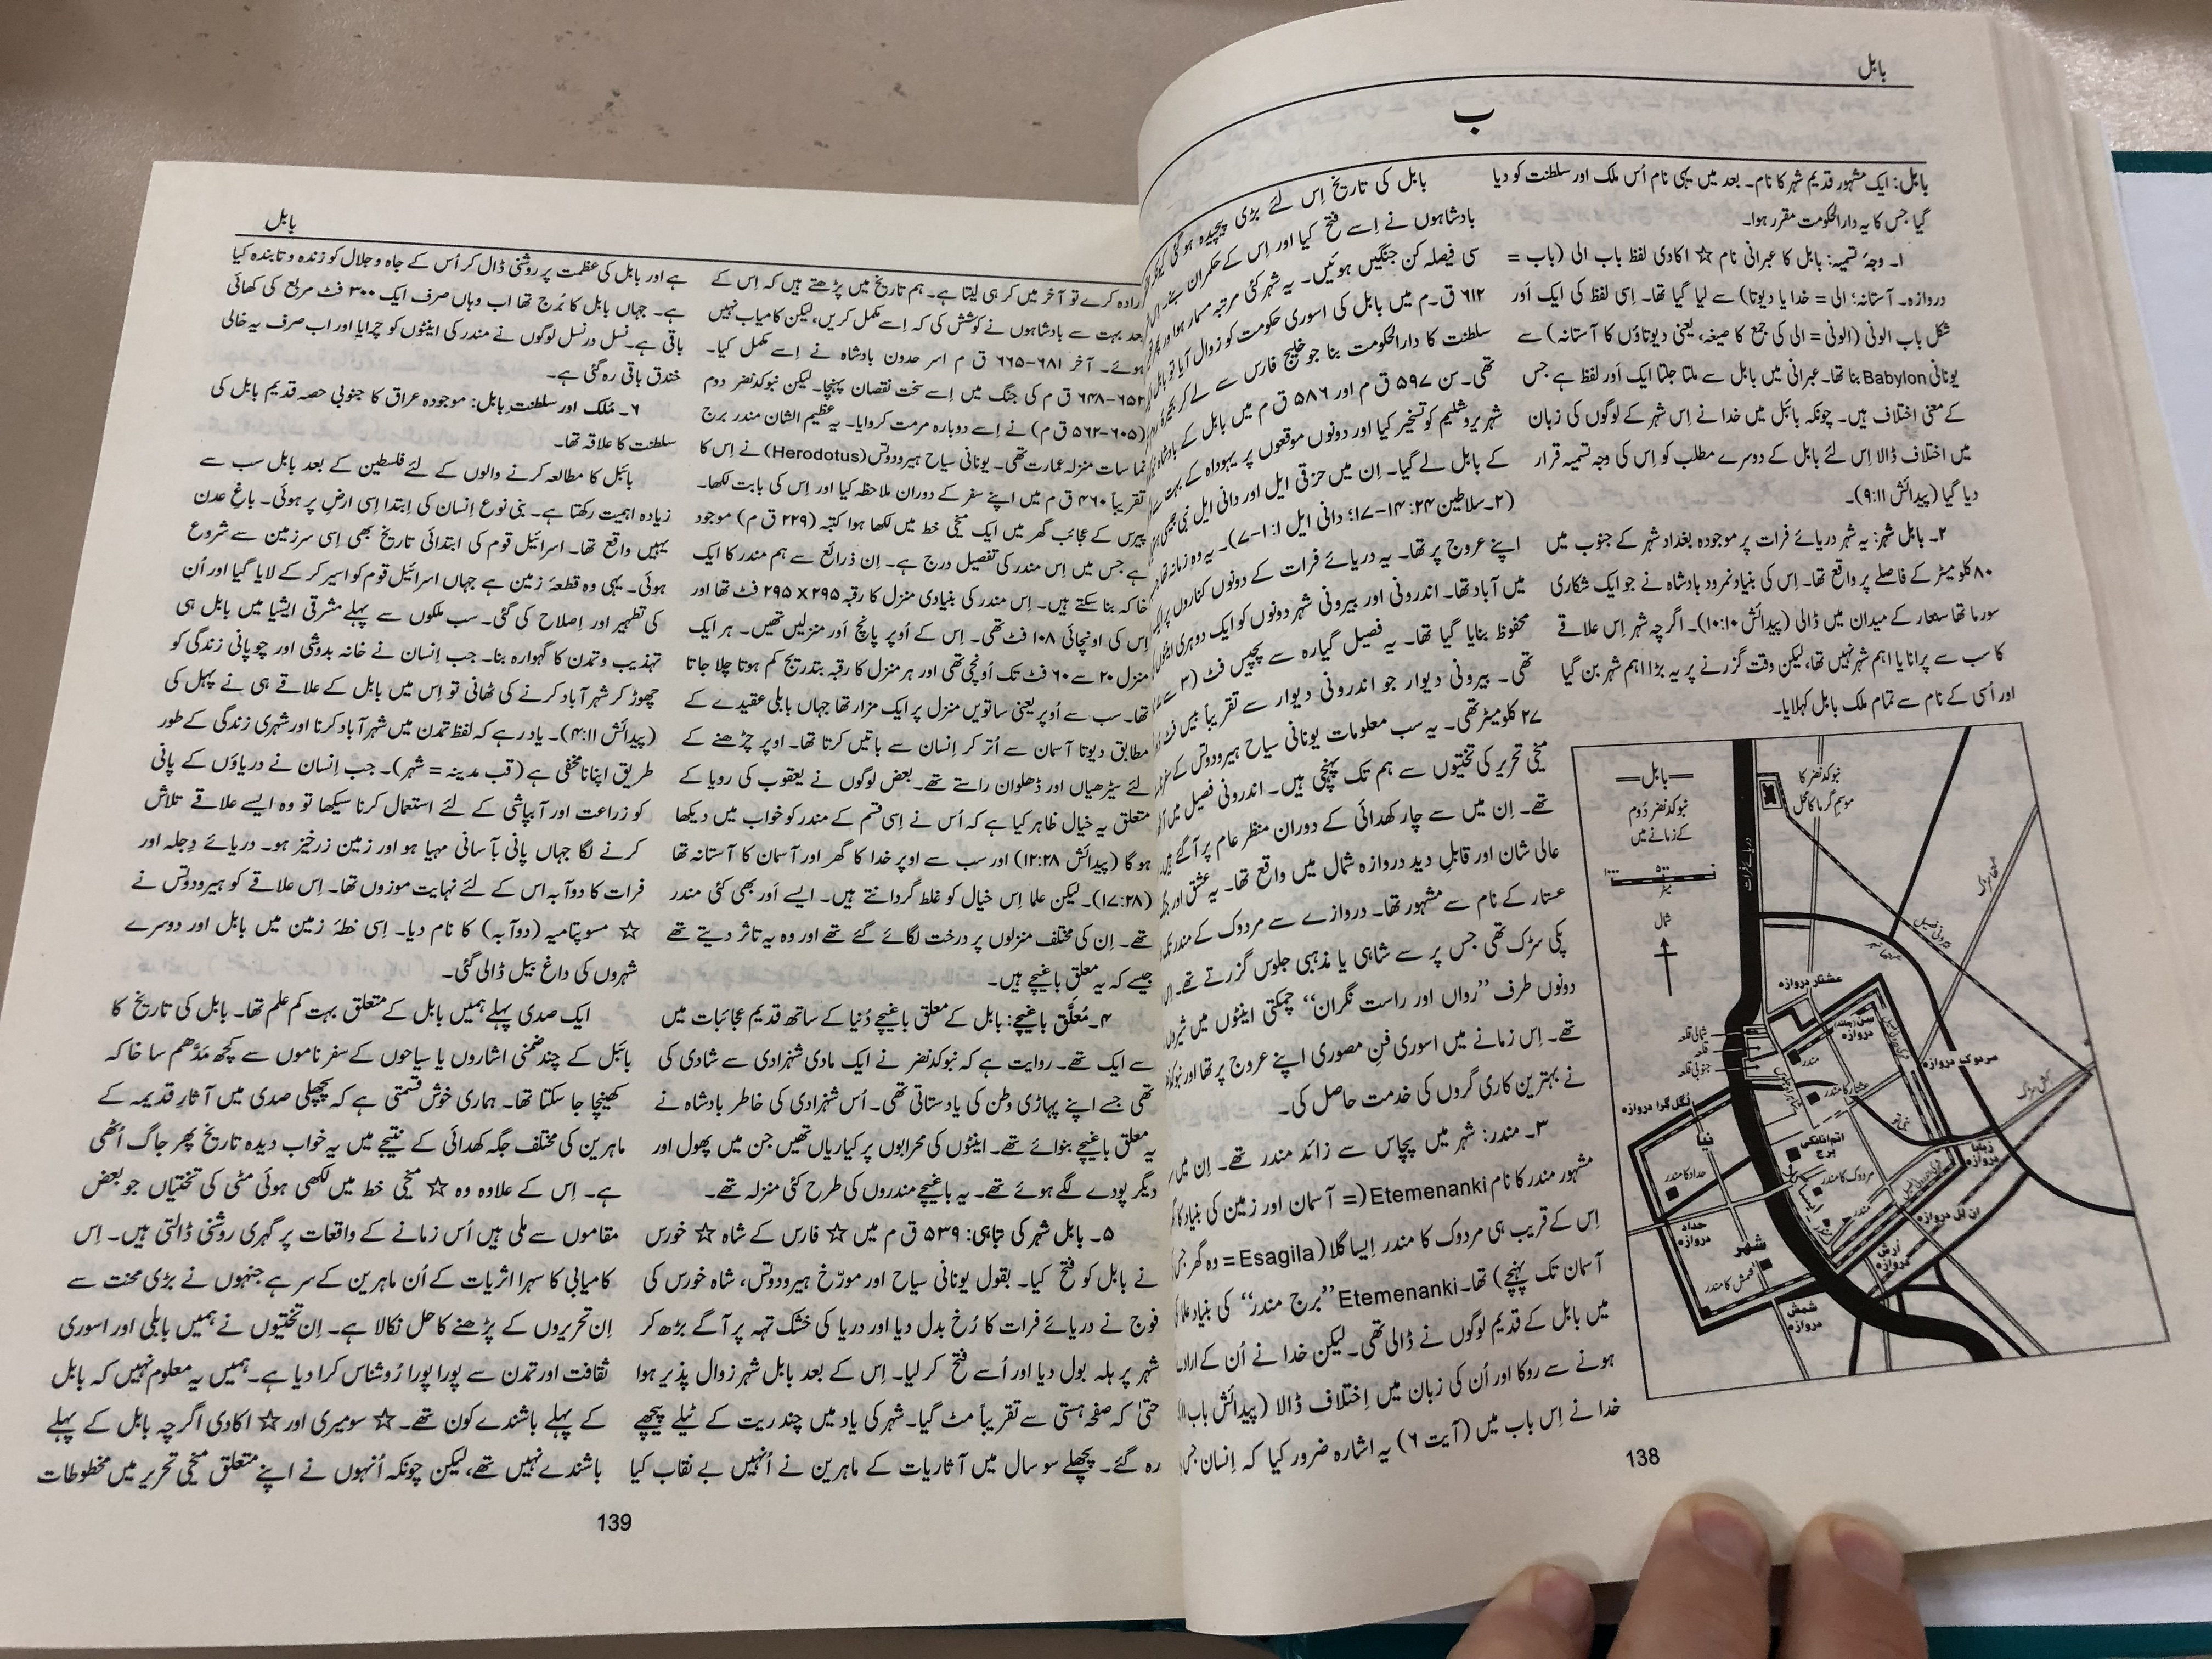 urdu-large-bible-dictionary-by-f.s.-khair-ullah-with-5.000-subjects-from-the-bible-hardcover-with-illustrations-maps-and-diagrams-9-.jpg